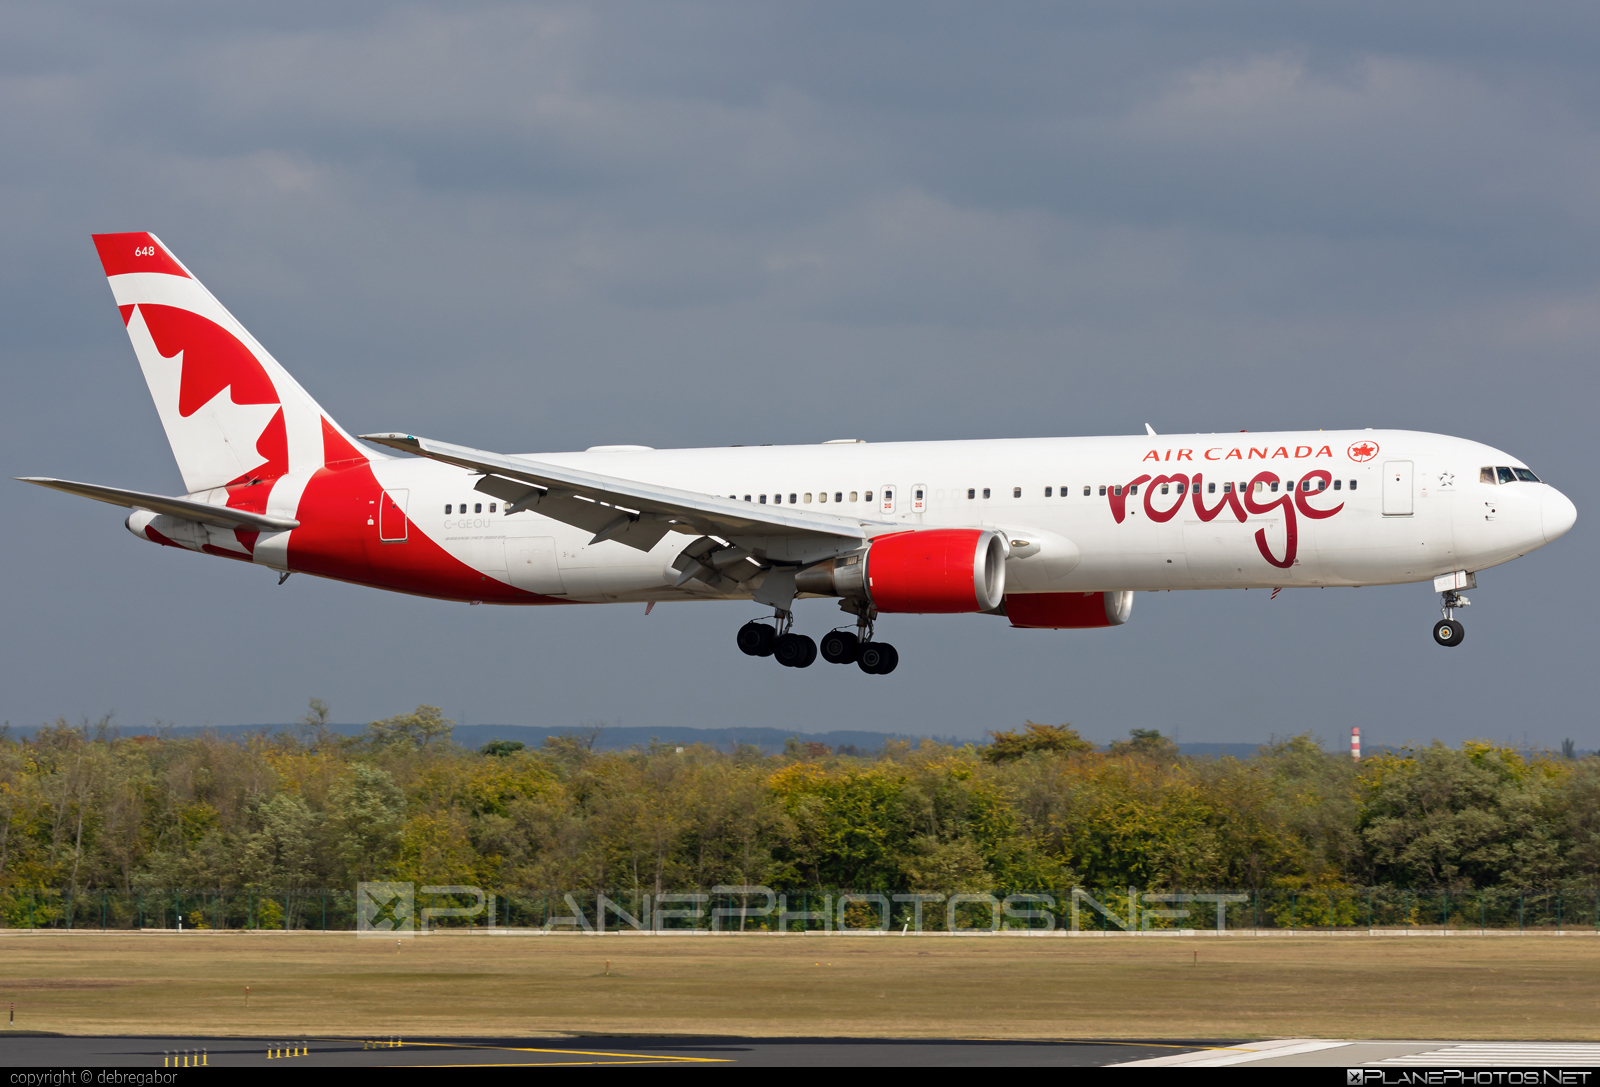 Boeing 767-300ER - C-GEOU operated by Air Canada Rouge #aircanadarouge #b767 #b767er #boeing #boeing767